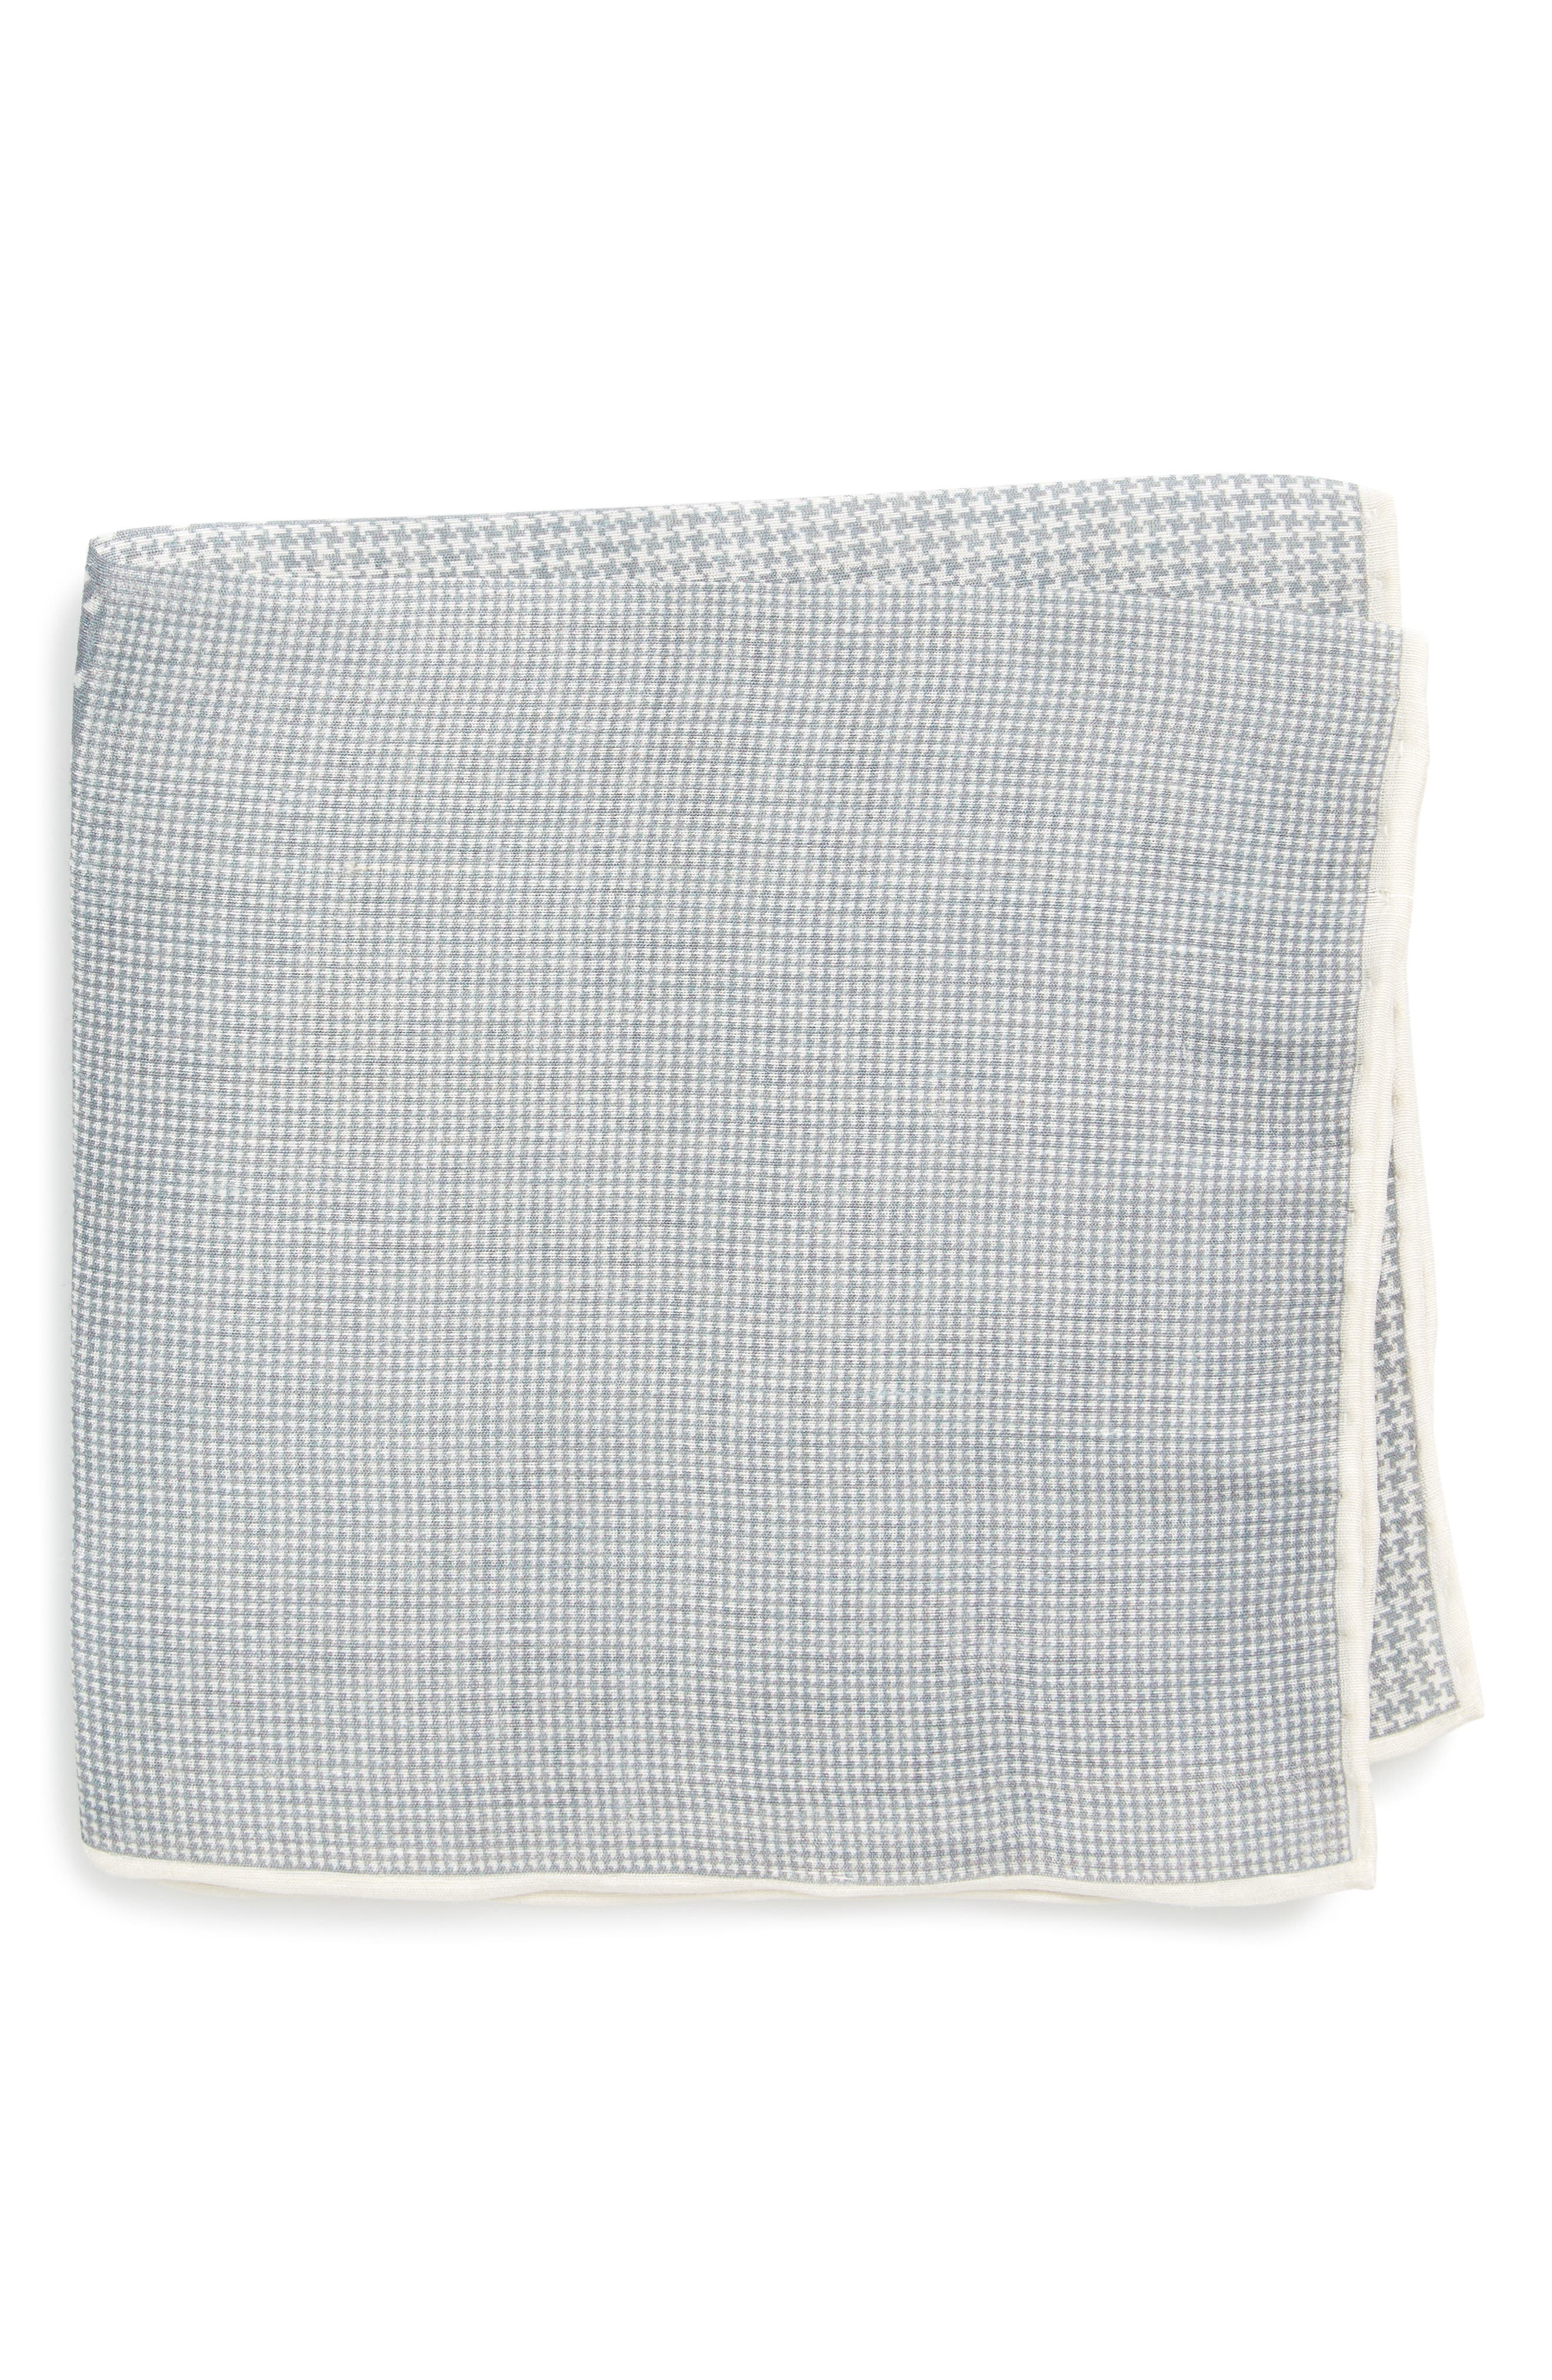 Houndstooth Pocket Square,                         Main,                         color, 039